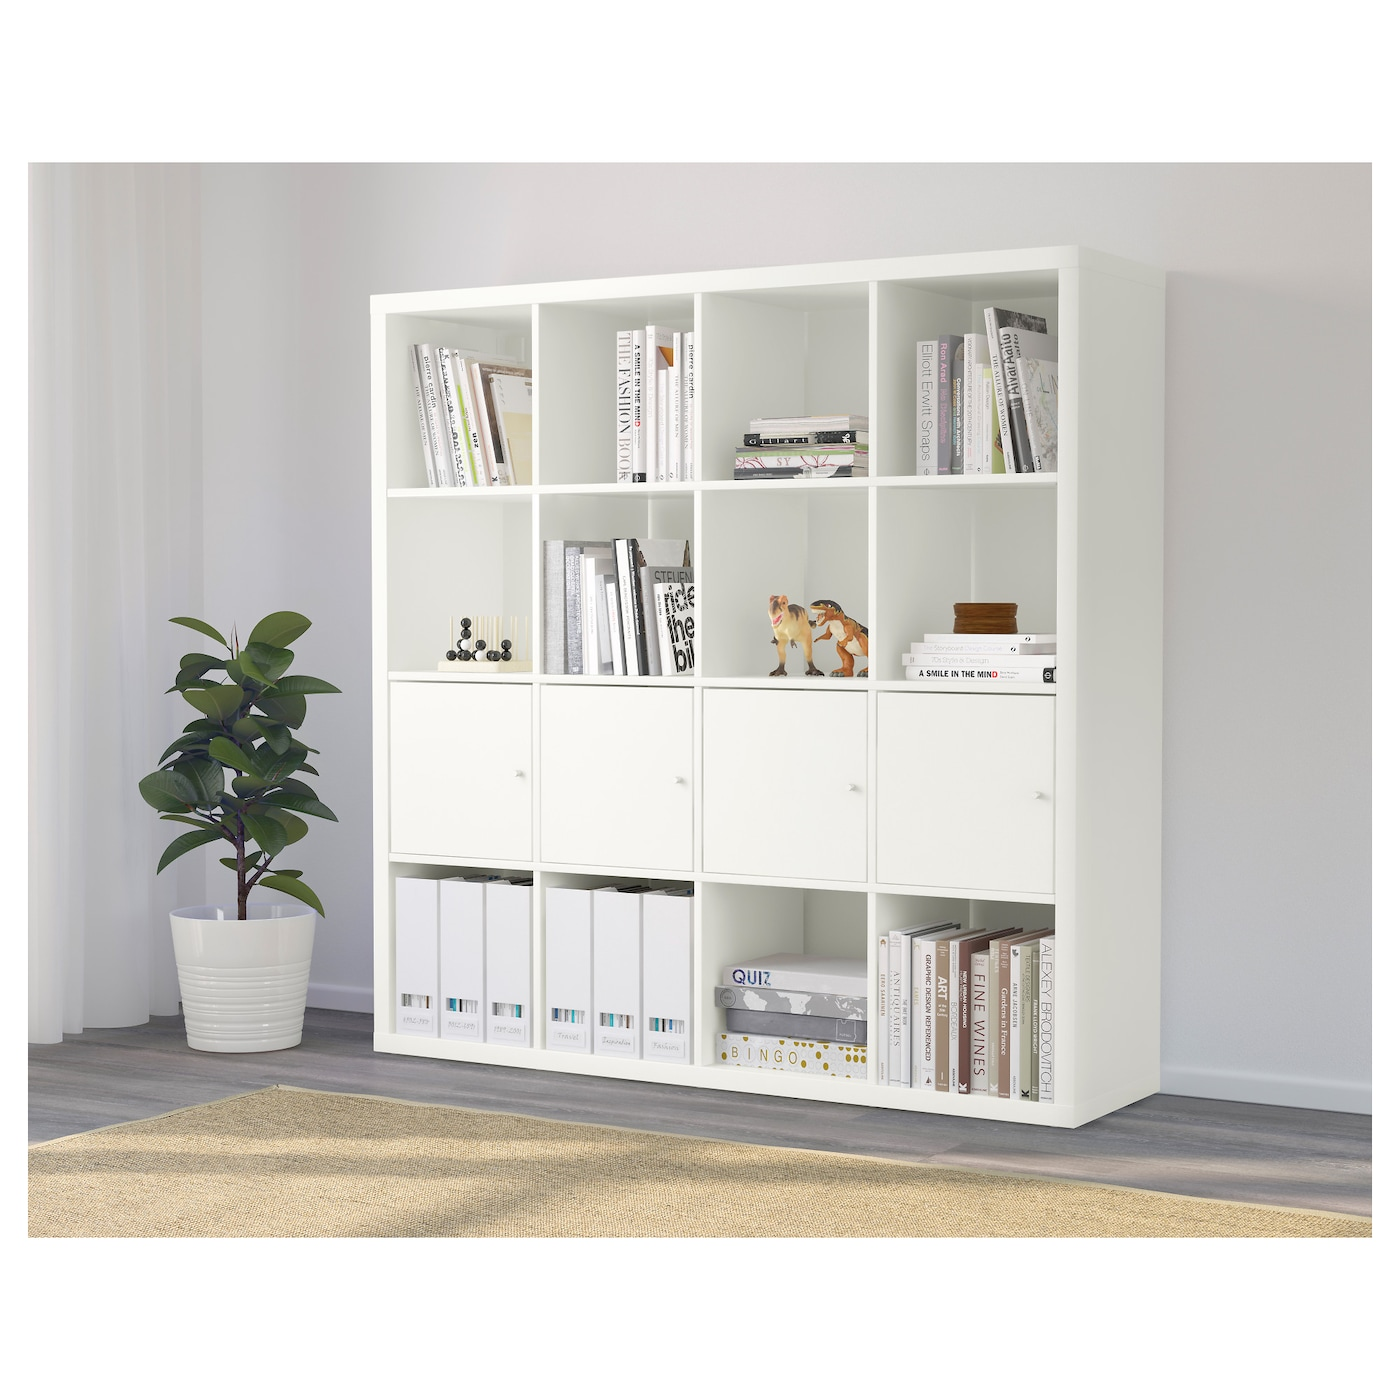 kallax shelving unit with 4 inserts white 147 x 147 cm ikea. Black Bedroom Furniture Sets. Home Design Ideas